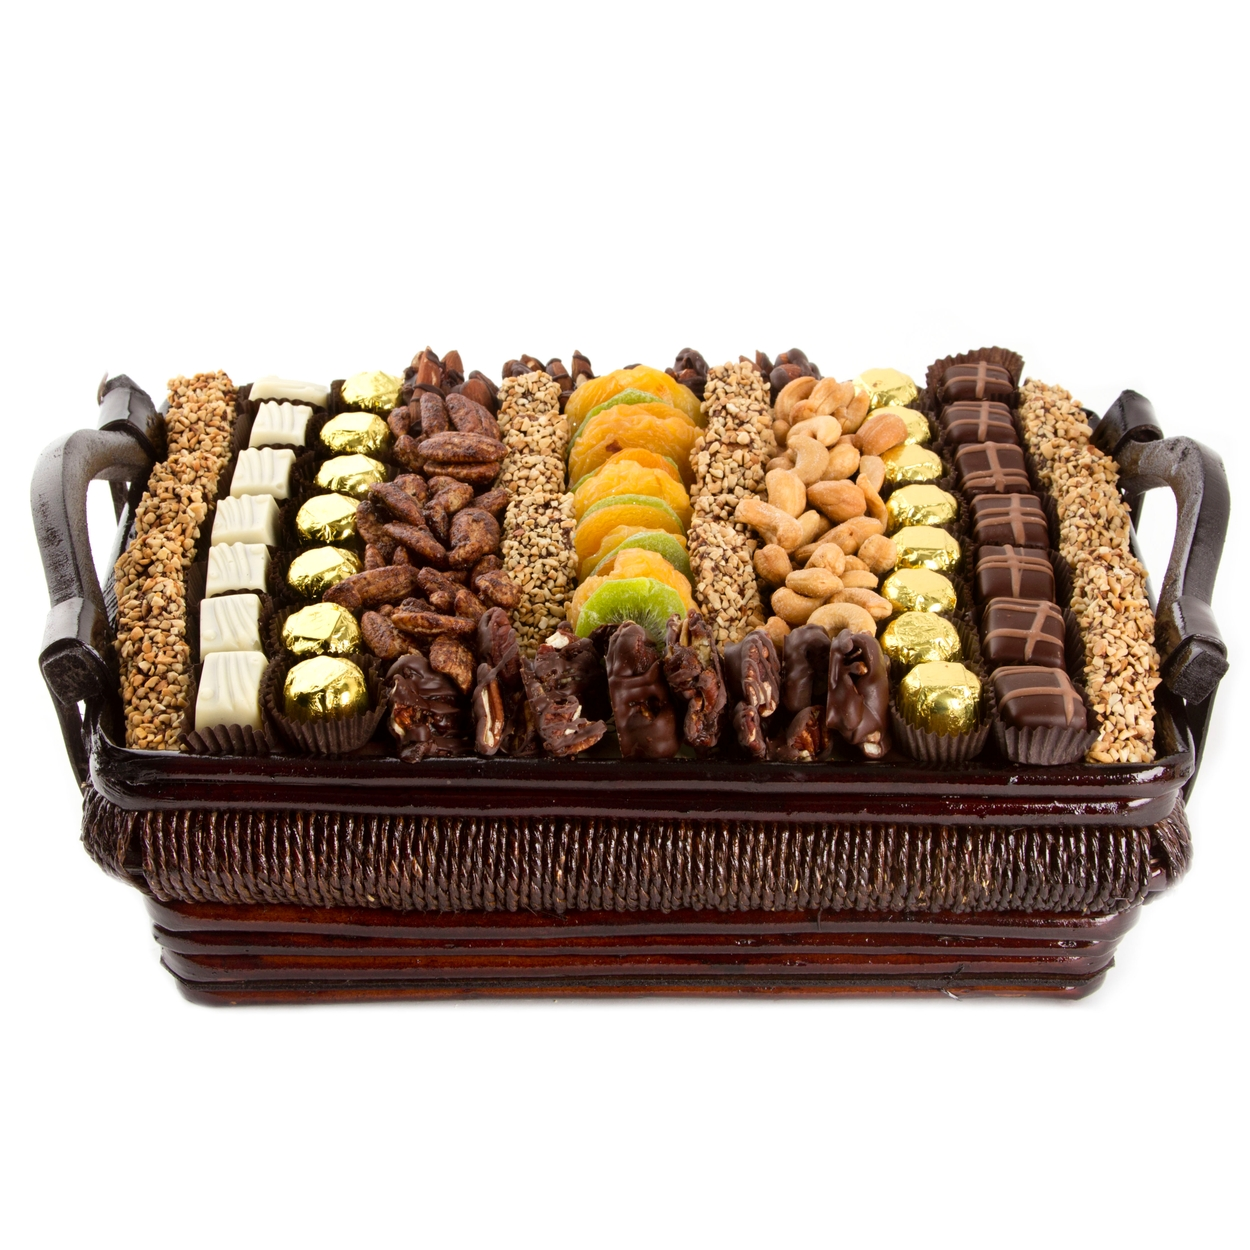 Large Chocolate, Dried Fruit and Nut Gift Basket • Oh! Nuts®